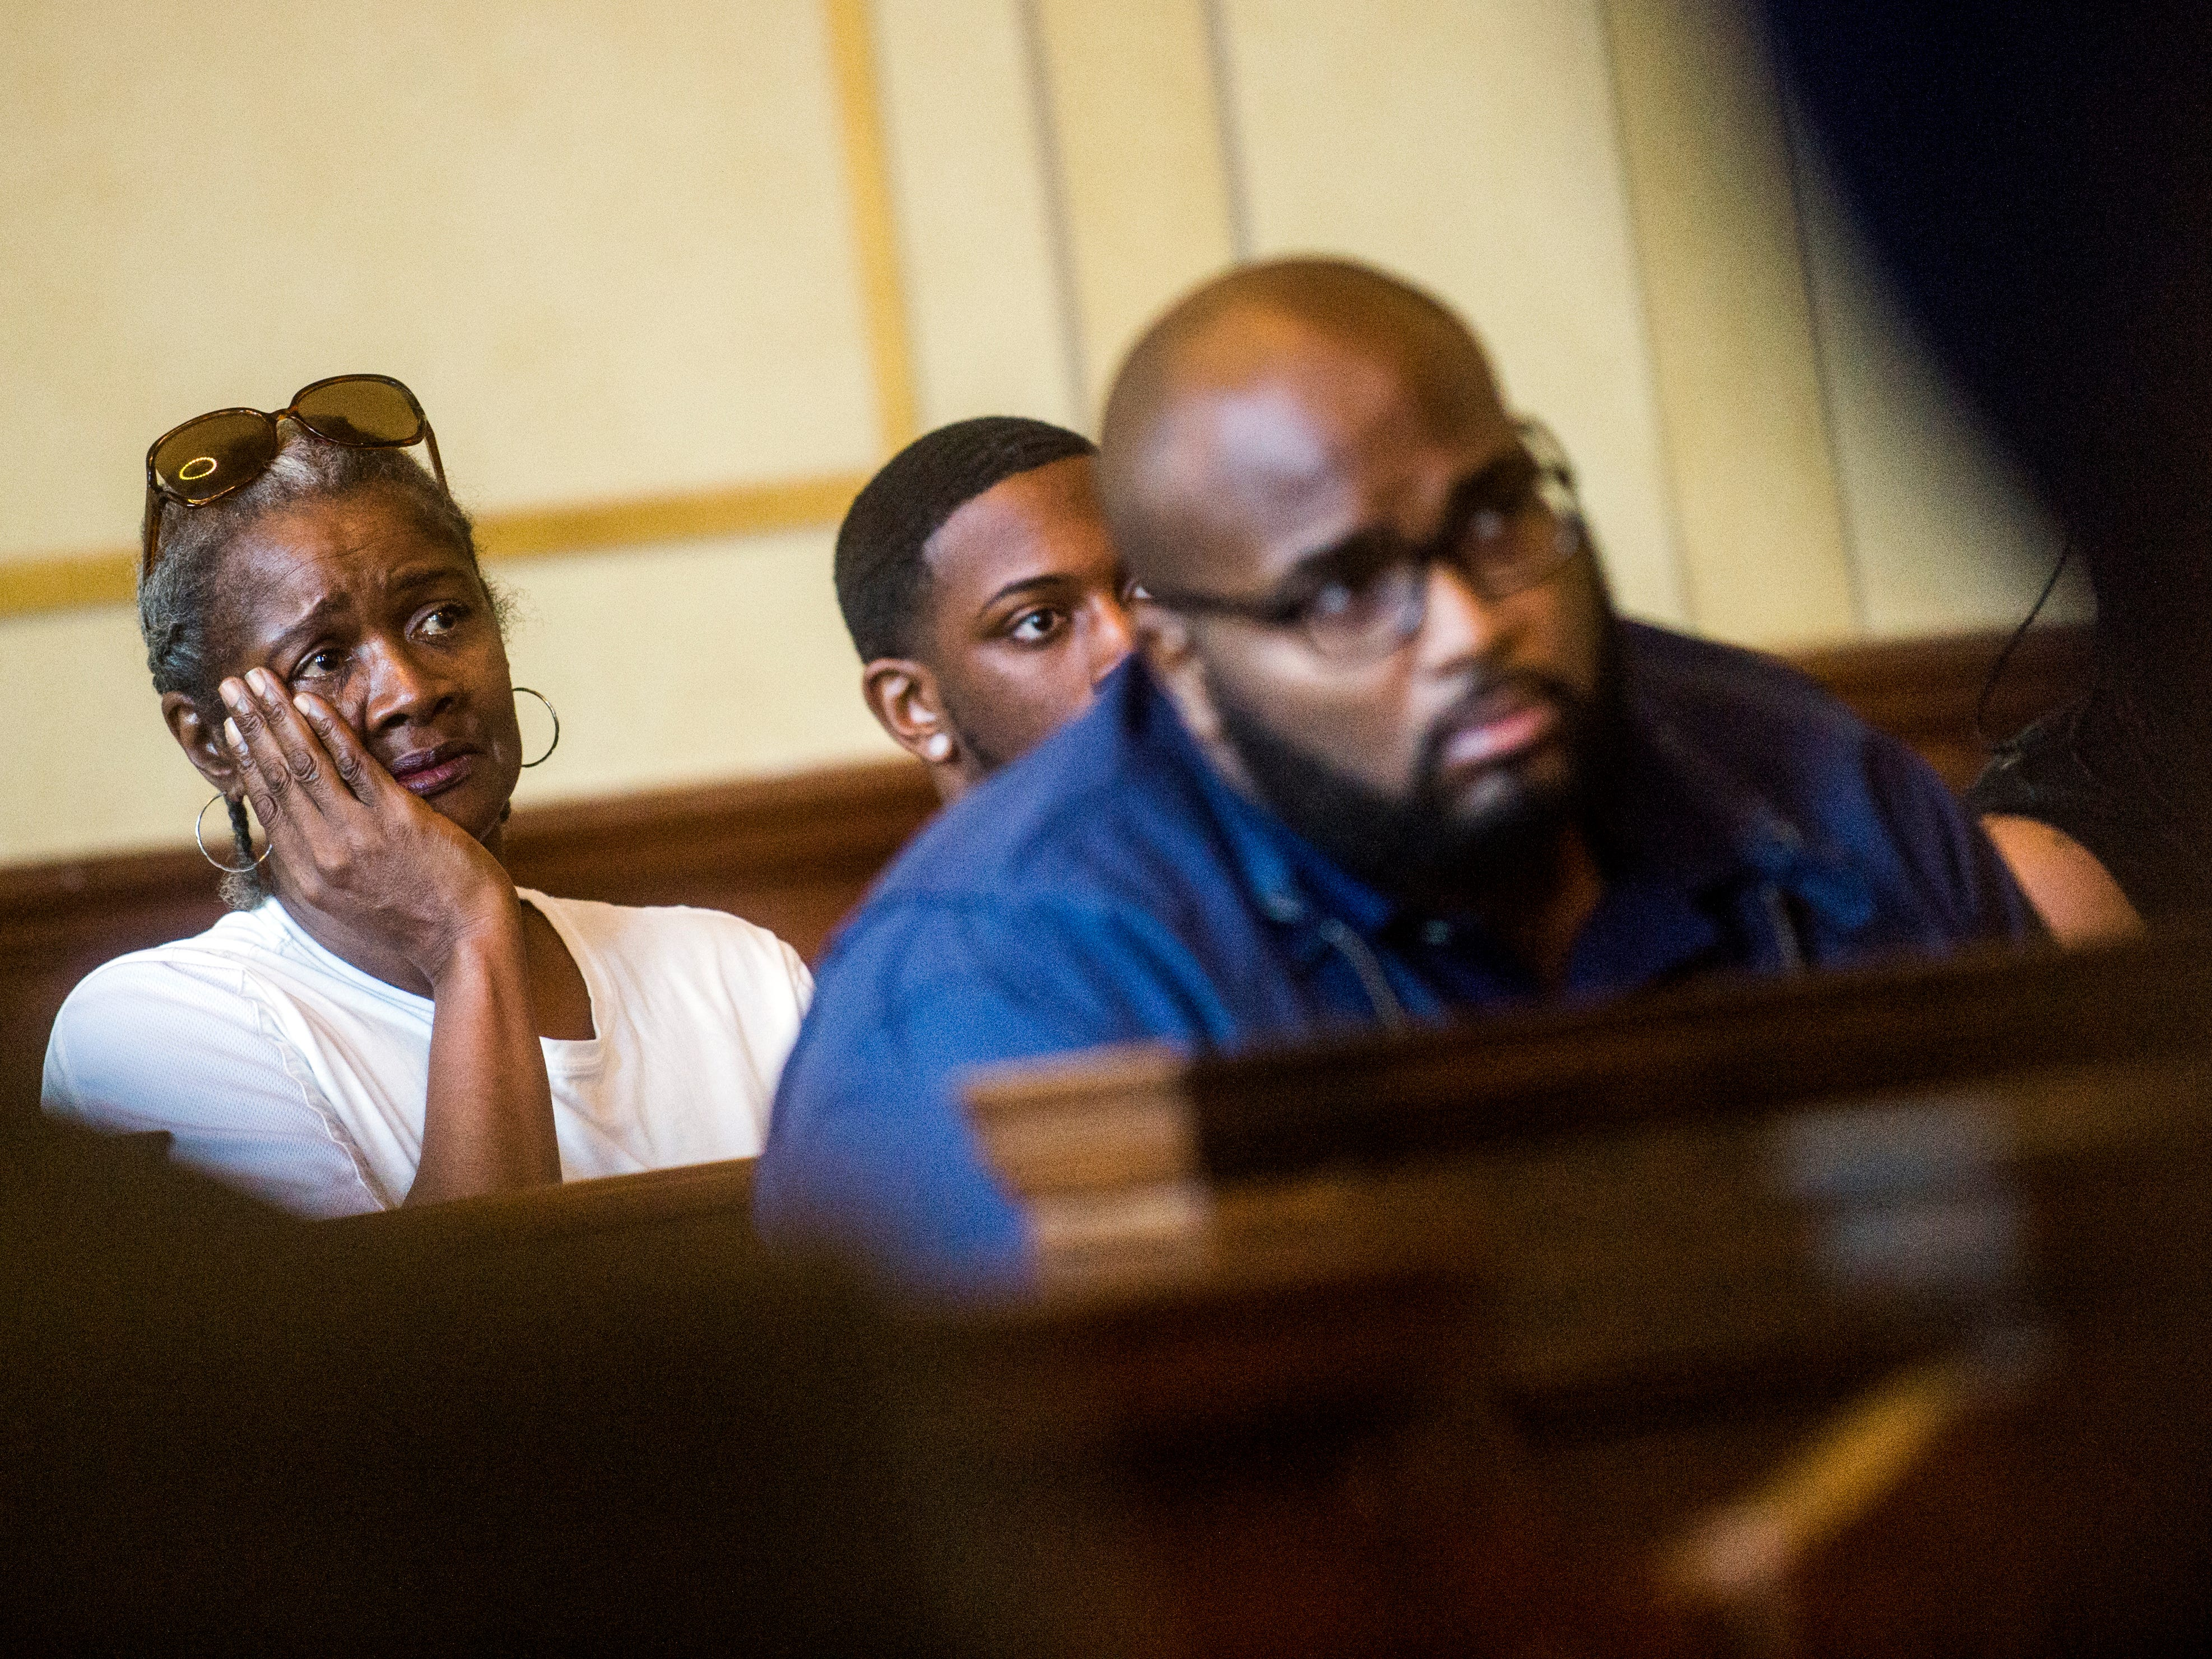 Family members of Erika Finley, 29, listen from the gallery to Genesee Circuit Judge Geoffrey L. Neithercut sentence Finley on Wednesday, Sept. 5, 2018 at Genesee Circuit Court in Flint, Mich. Finley will spend the next 15 to 40 years in prison for the 2015 murder of her daughter, Kimora Lee Simon.